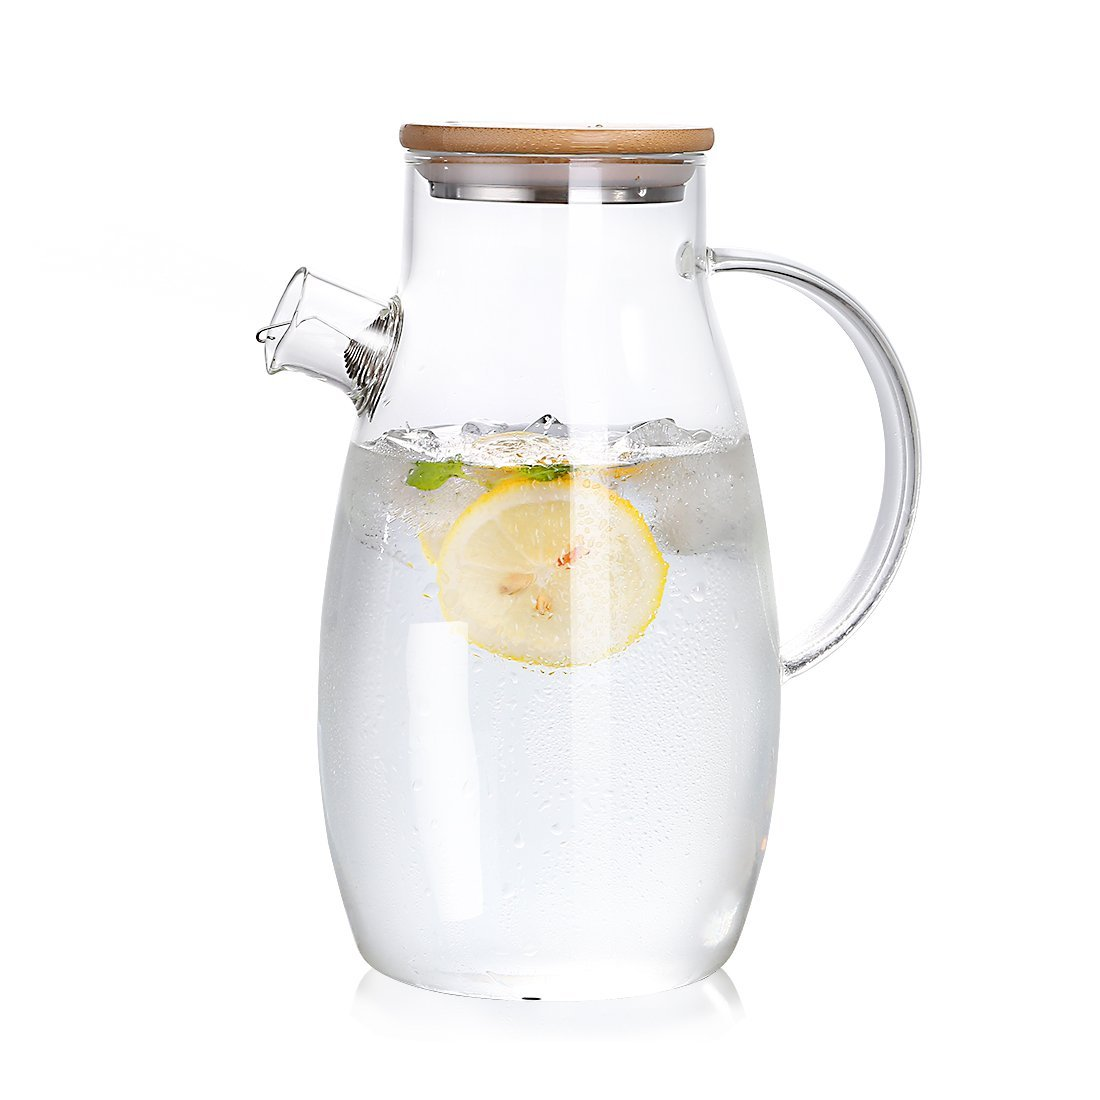 Heat Proof Pitcher 1800ml 60oz Heat Resistant Glass Pitcher Jar Teapot With